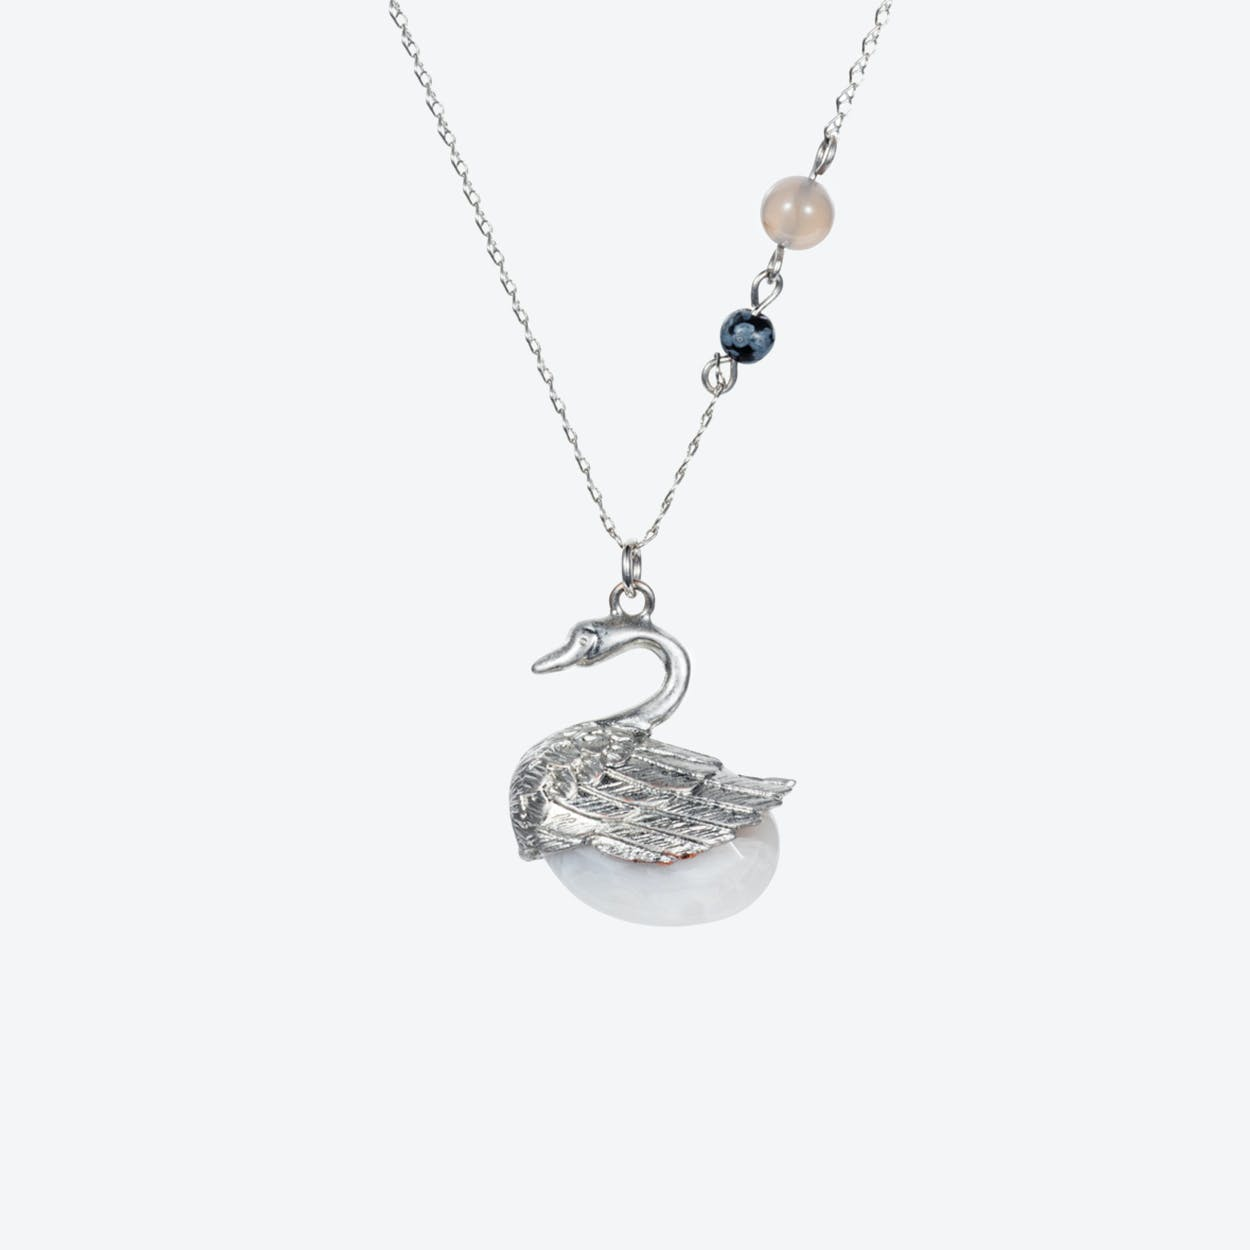 Swan Charm Necklace – Silver & Grey Agate